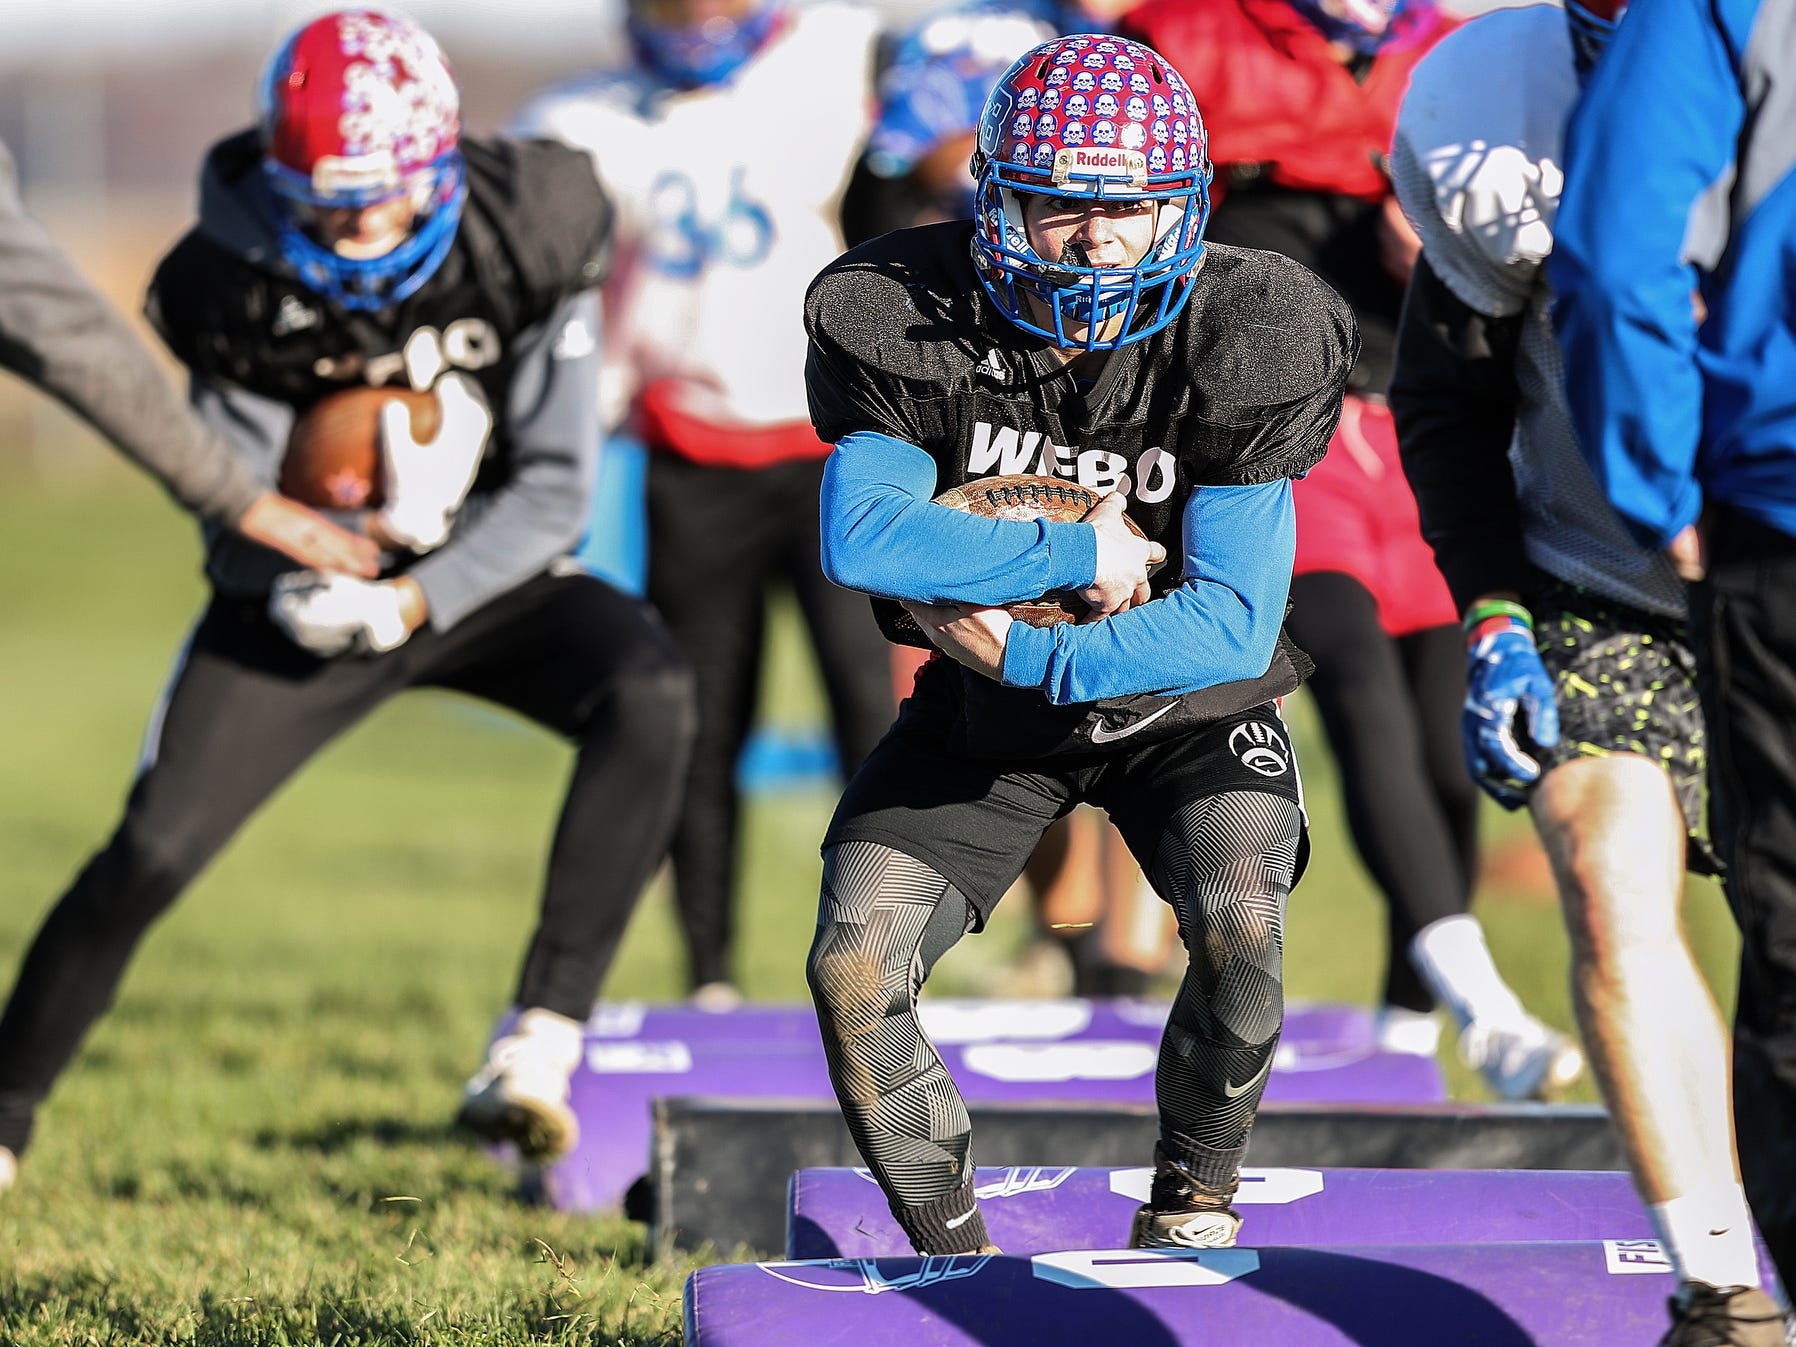 Stars linebacker Devin Weakley (2) runs a drill during practice at Western Boone Junior-Senior High School in Thornton, Ind., Wednesday, Nov. 7, 2018. Western Boone faces Scecina on Friday, Nov. 9, in the regional championship.